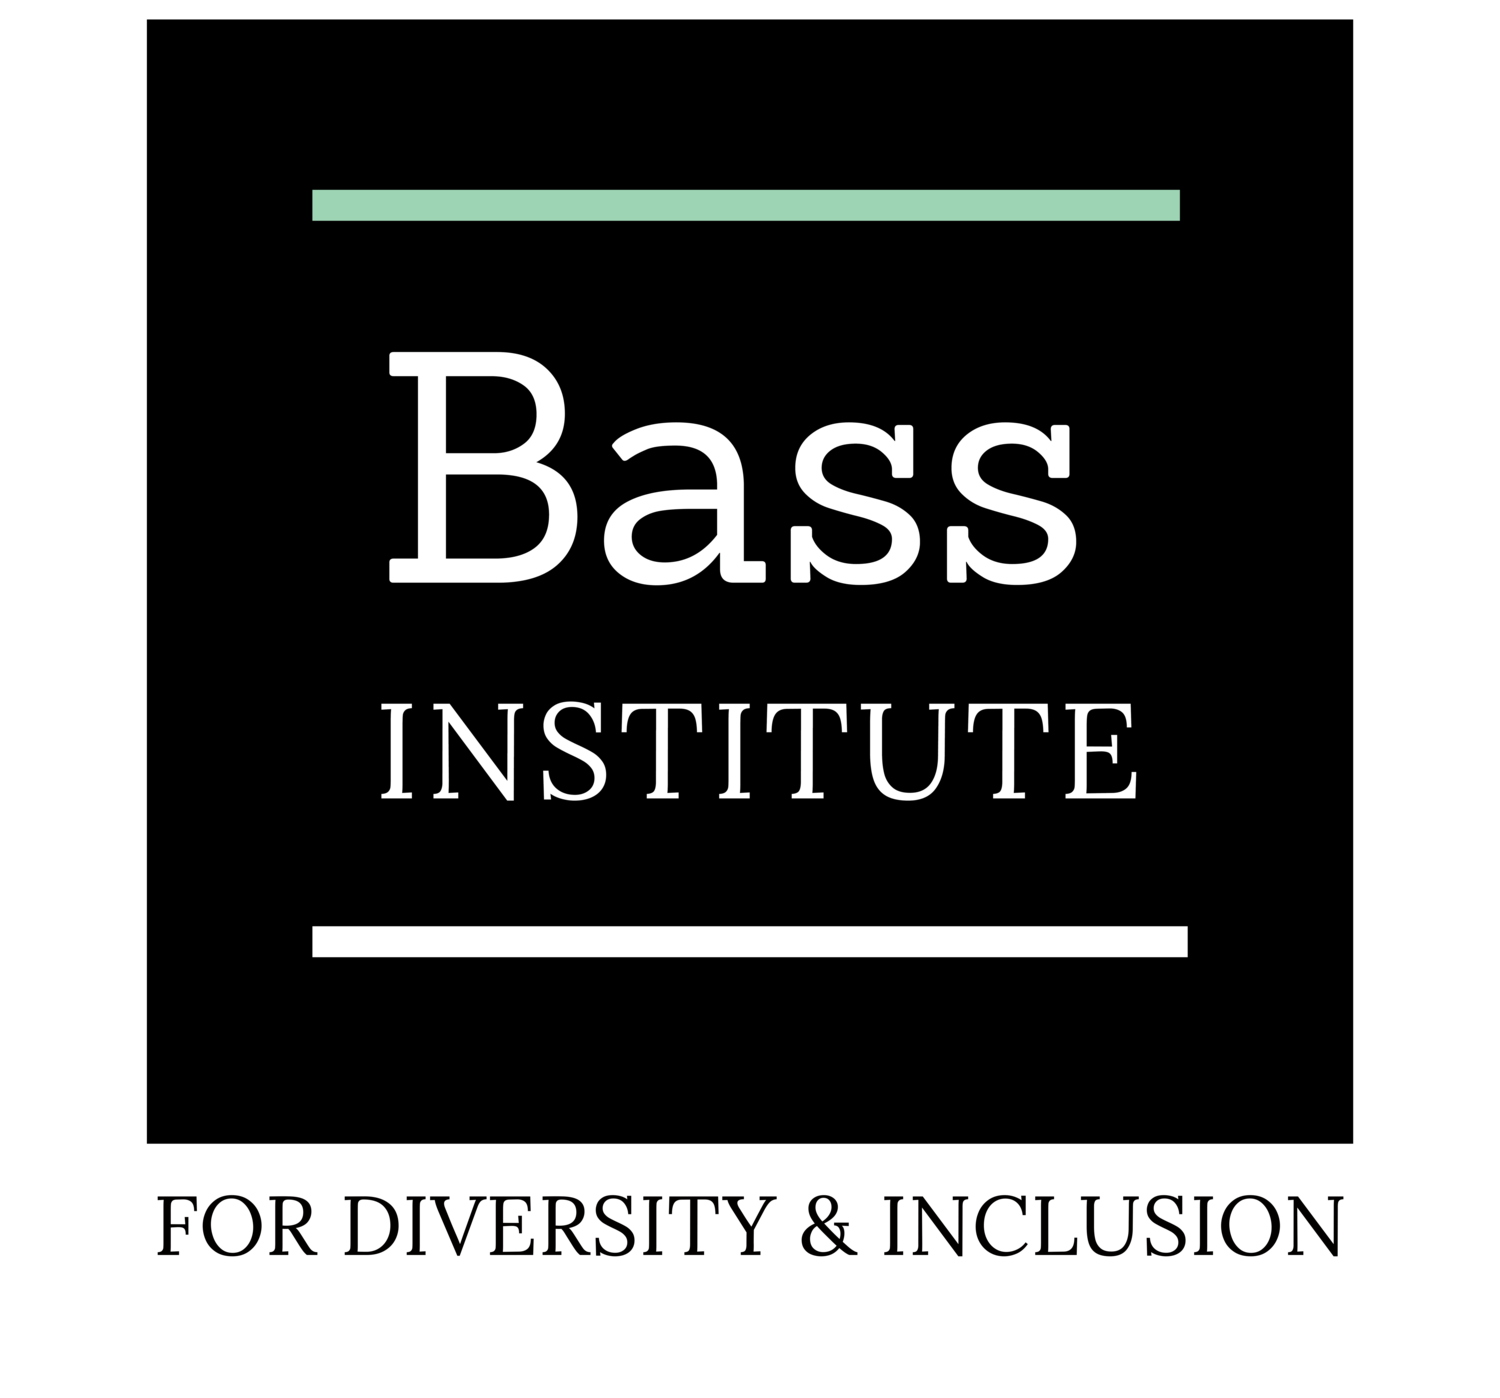 BASS INSTITUTE FOR DIVERSITY & INCLUSION